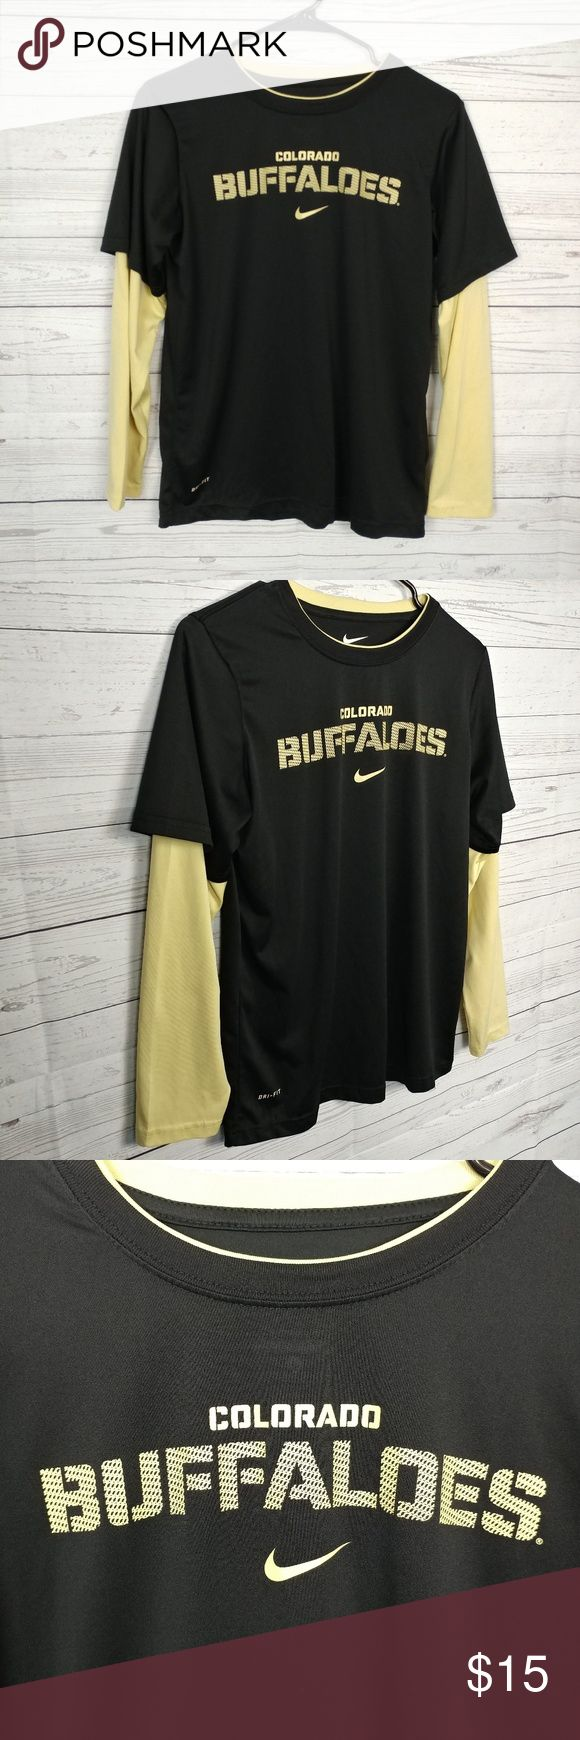 """Nike Dri-Fit Colorado Buffaloes T-Shirt Nike Women's Dri-Fit Colorado Buffaloes T-Shirt Faux Layered Gold Long Sleeves Size L. Go Buffs!  This item is gently used in excellent condition. There are NO observed flaws and is free and clear of any noticeable stains, rips, tears, or fabric pulls.  Measurements: Bust (underarm to underarm) 19.5"""" Length (top of collar to bottom of shirt): 25""""  Thank you for viewing this item and please be sure to check out our closet for more deals! Nike Tops…"""